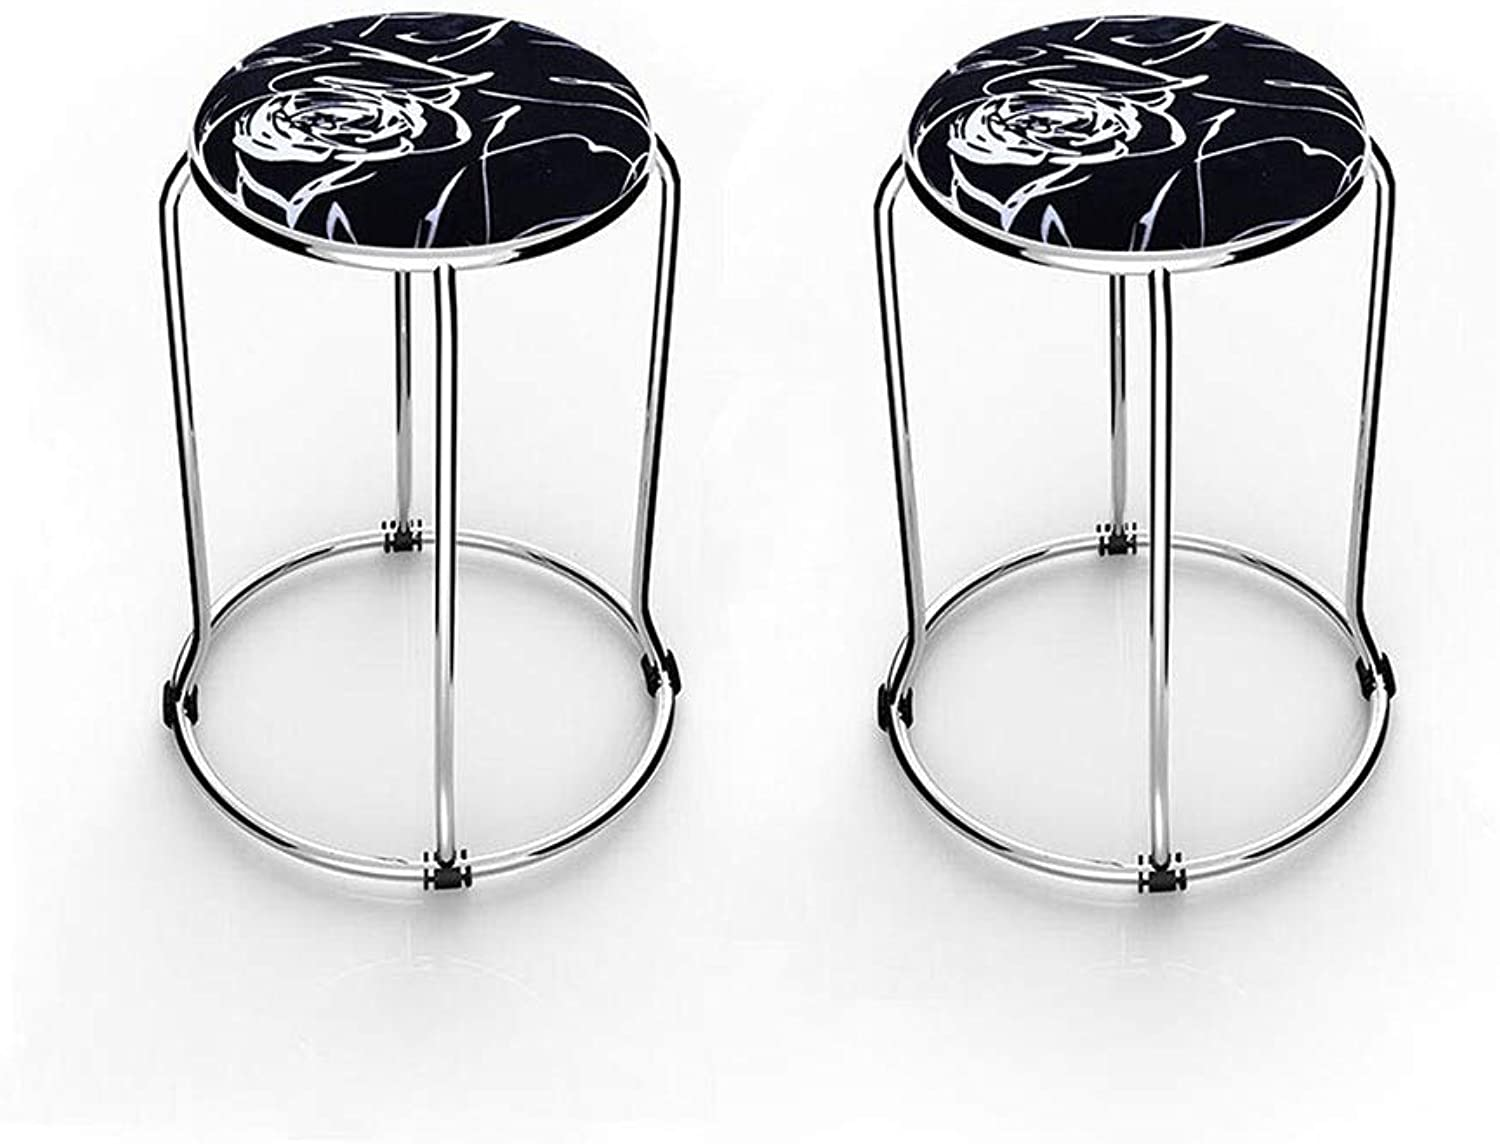 YCSD Sleek Minimalist Stainless Steel Stackable Stool Small Circle Stool Tea Table Fabric Stool Dining Stool (Set of 2) (color   03)